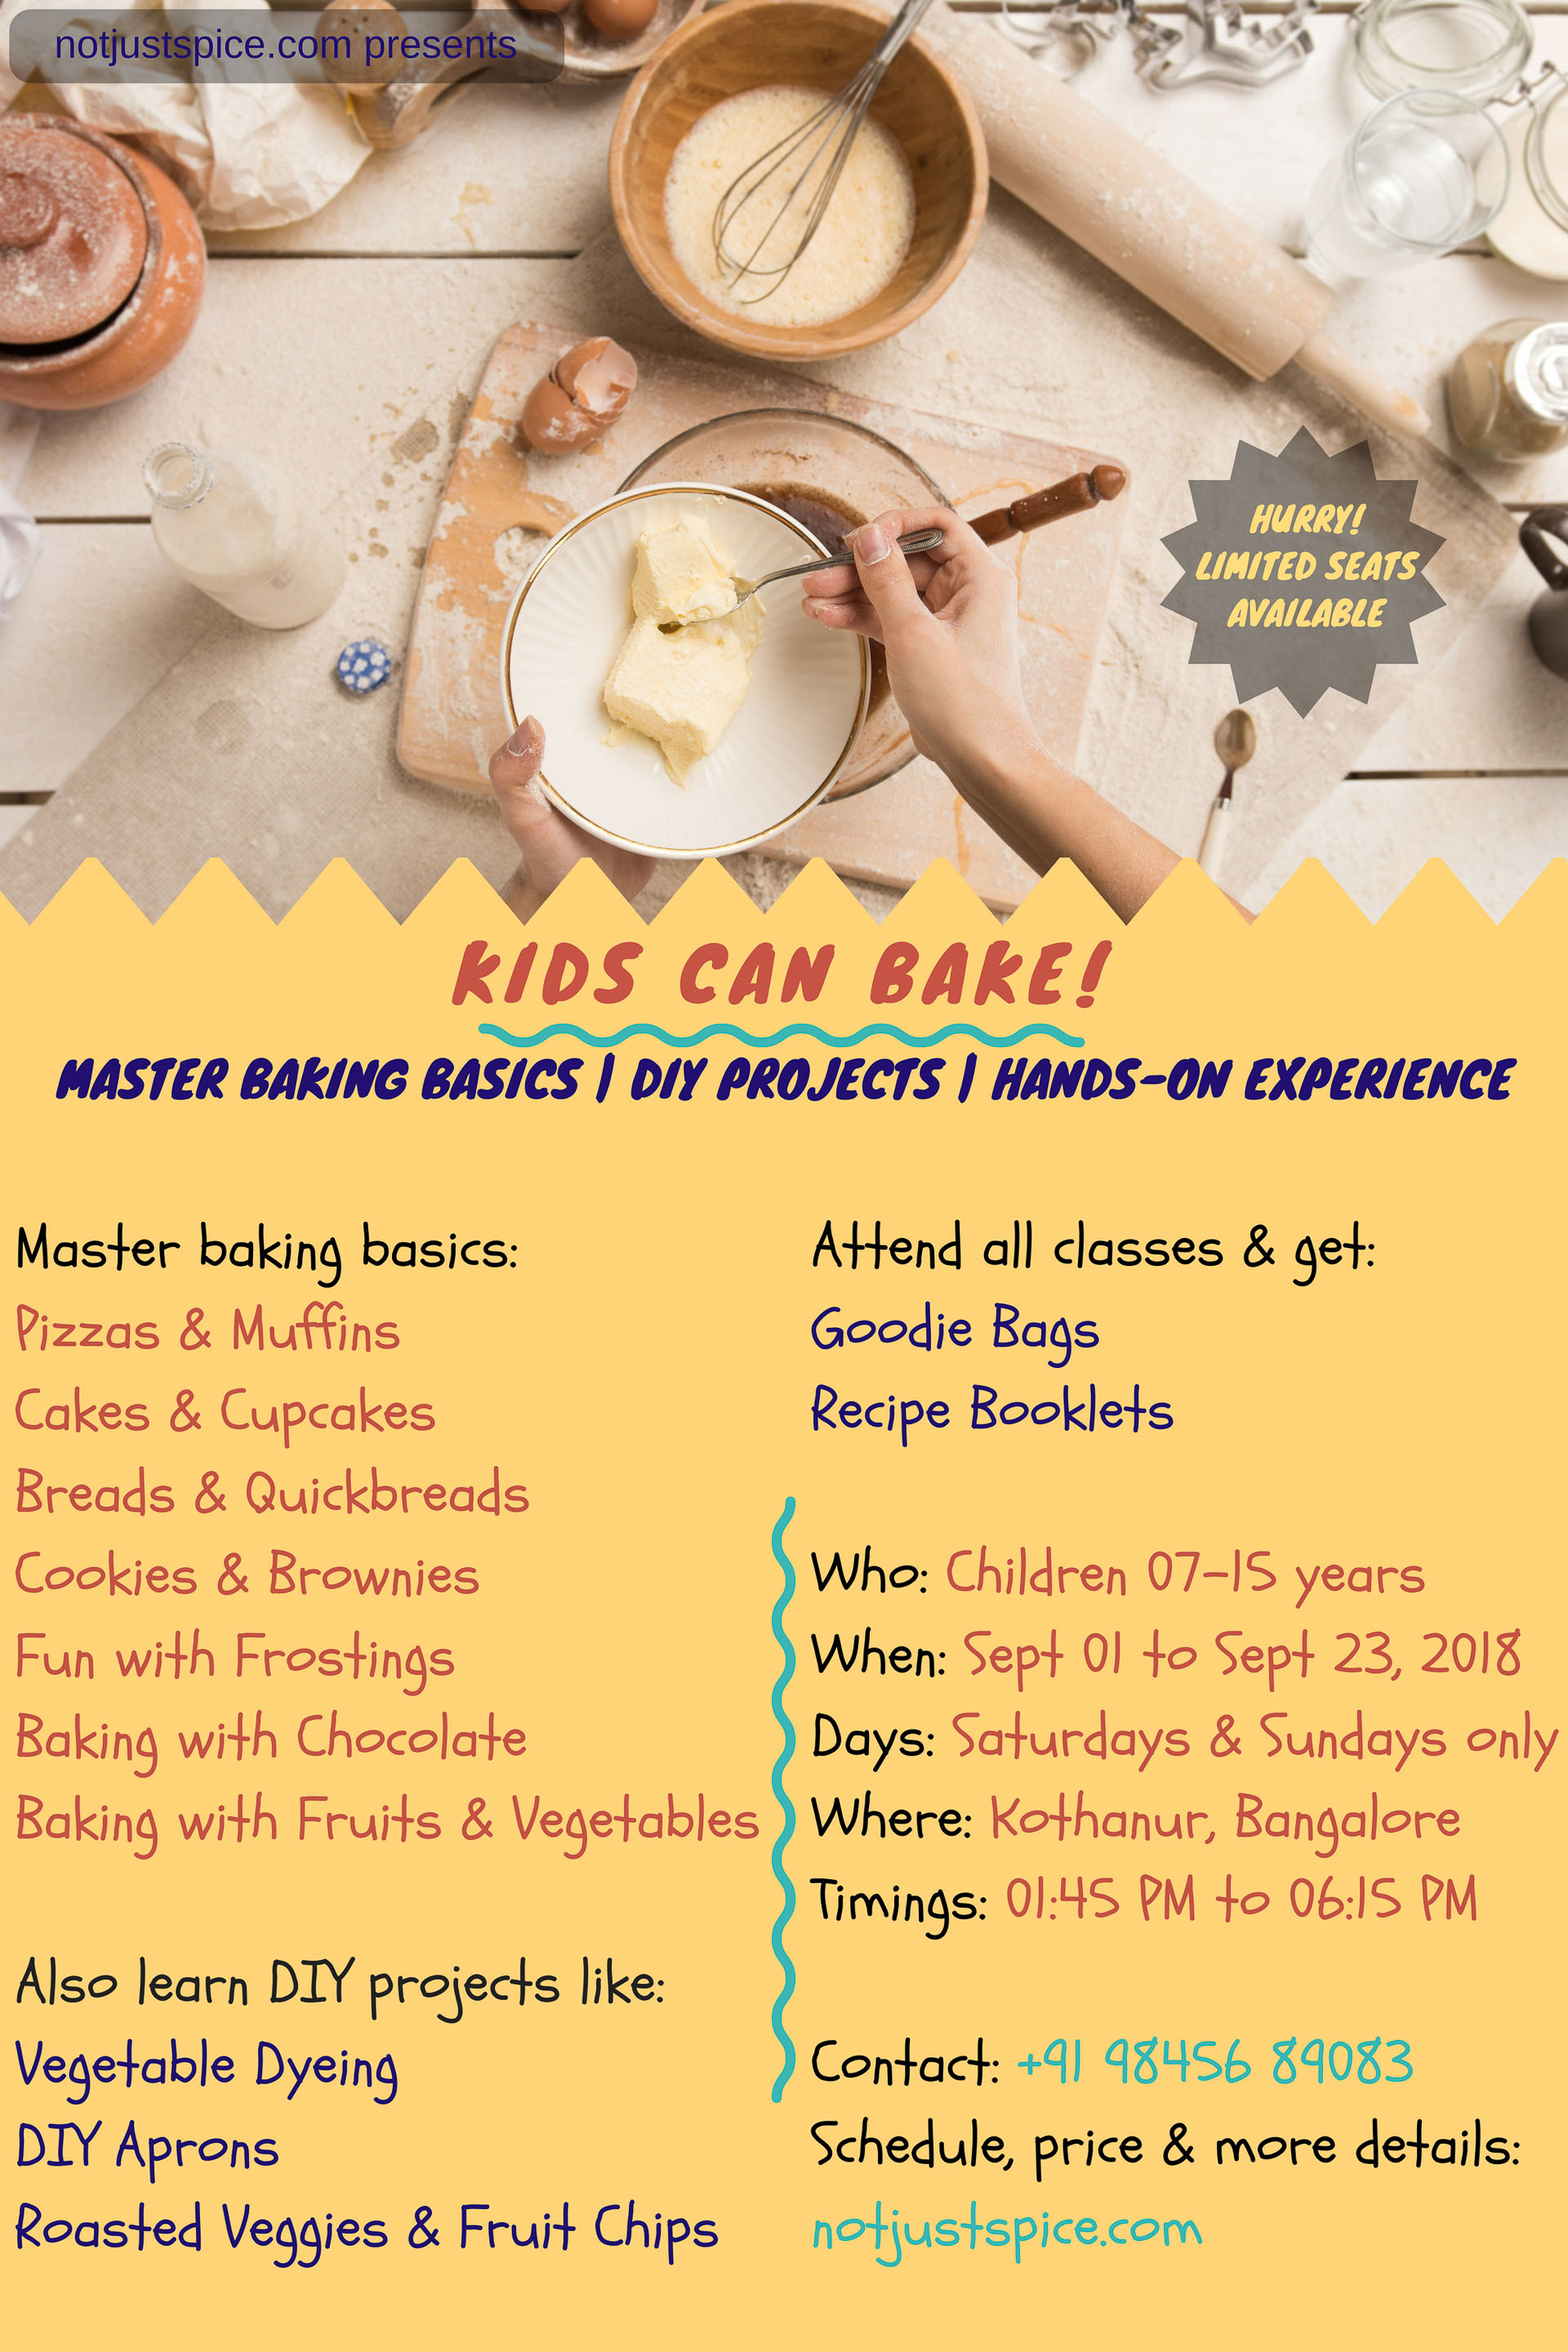 Kids Can Bake! Baking Classes for Kids by notjustspice.com